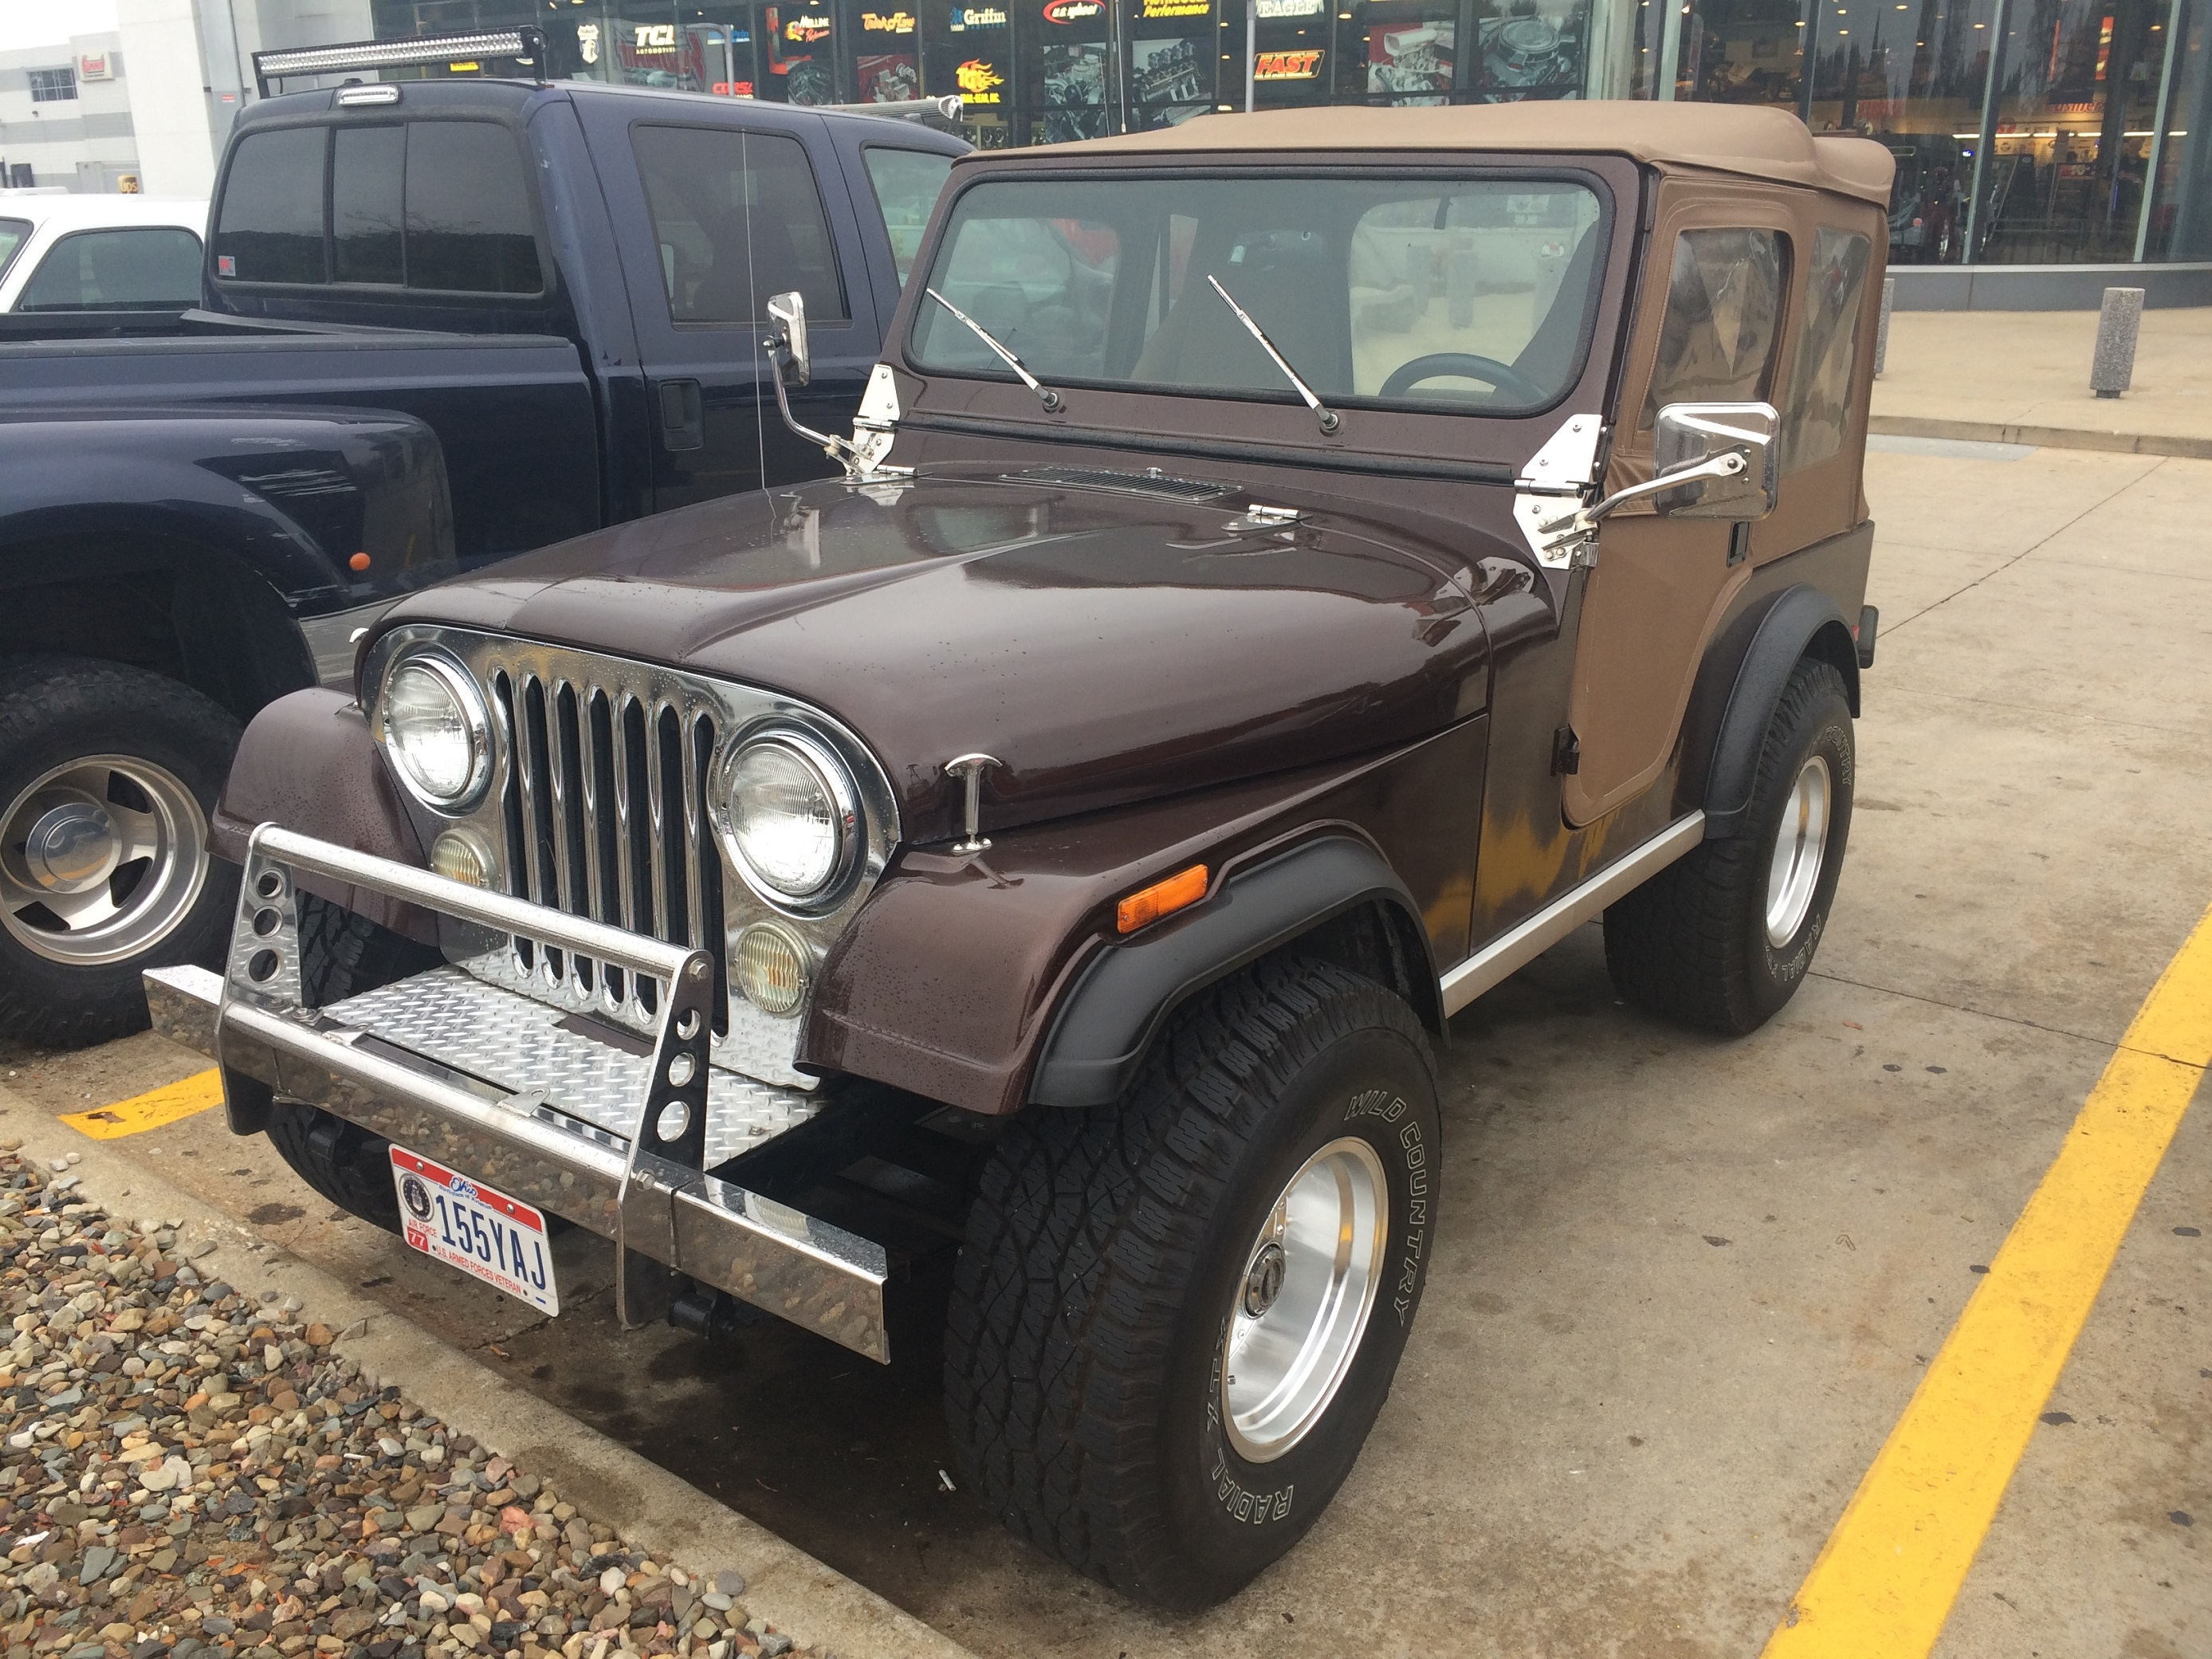 1977 Jeep CJ-5, Front Driver's Side